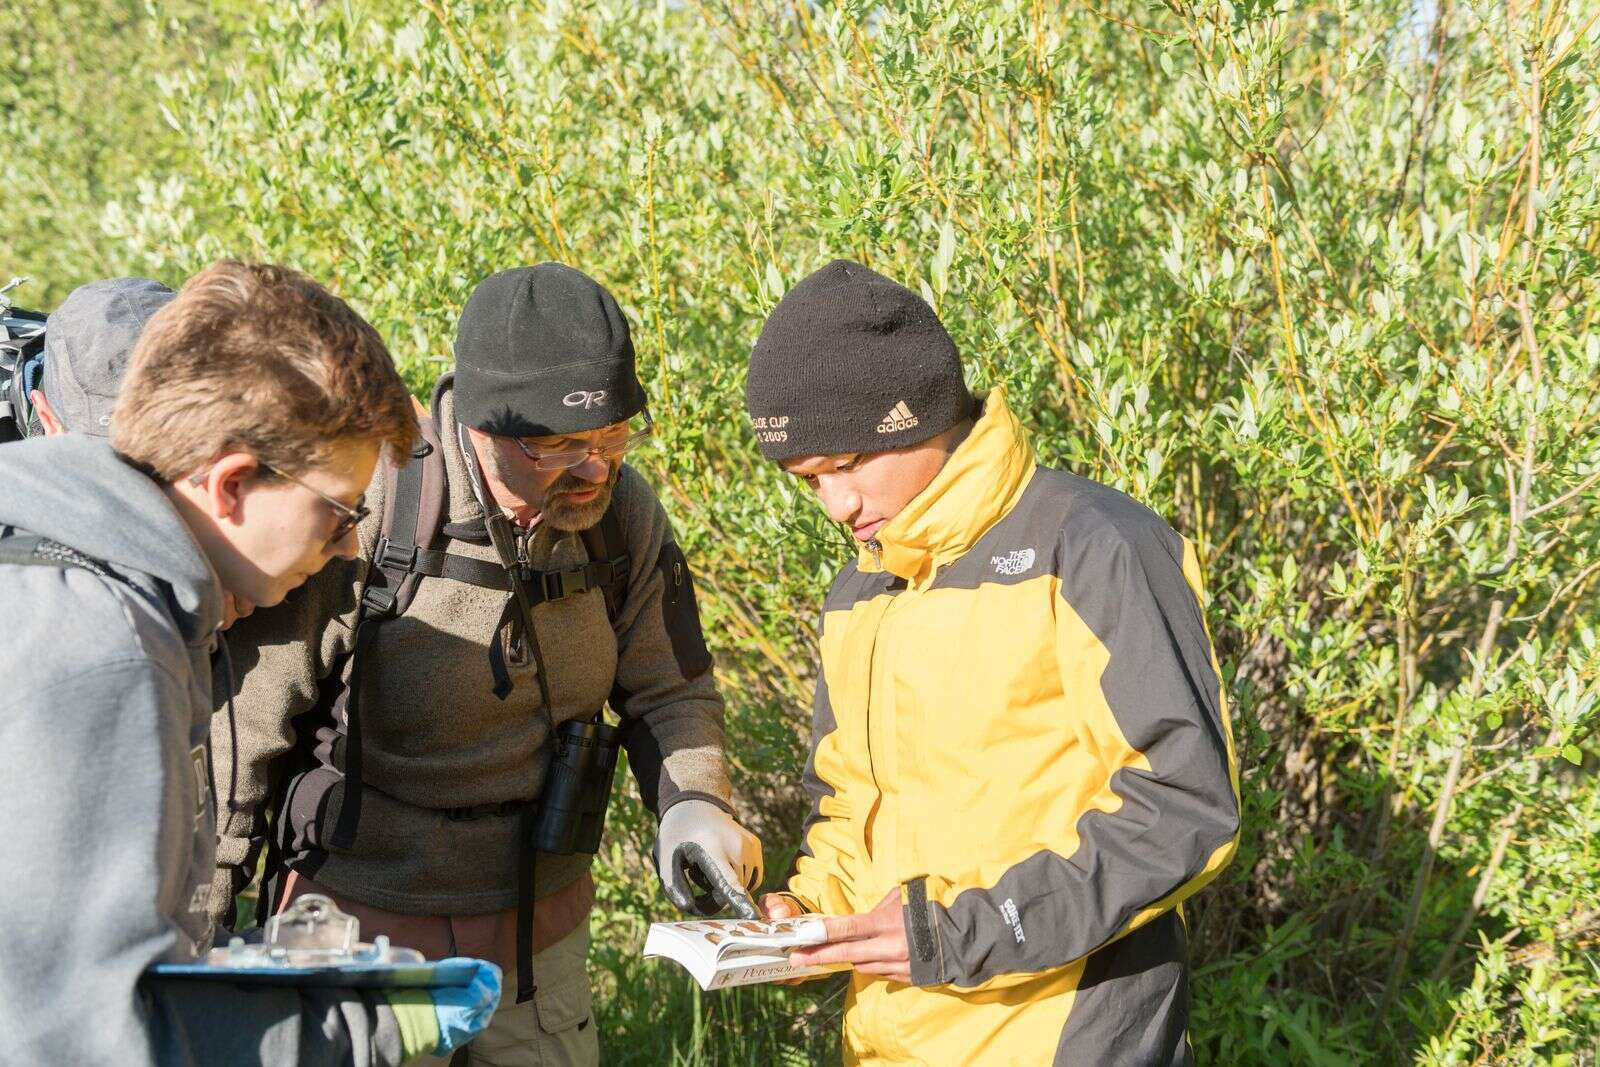 Colorado State University Fish, Wildlife and Conservation Biology students Alex Binkley and Terutaka Funabashi and Colorado Natural Heritage Program invertebrate zoologist and ecologist John Sovell identify the species of a shrew they captured during a BioBlitz led by Colorado State University at the Aspen Center for Environmental Studies Hallam Lake Preserve, June 27, 2019, a 25-acre site nestled in downtown Aspen. | William A. Cotton/CSU Photography